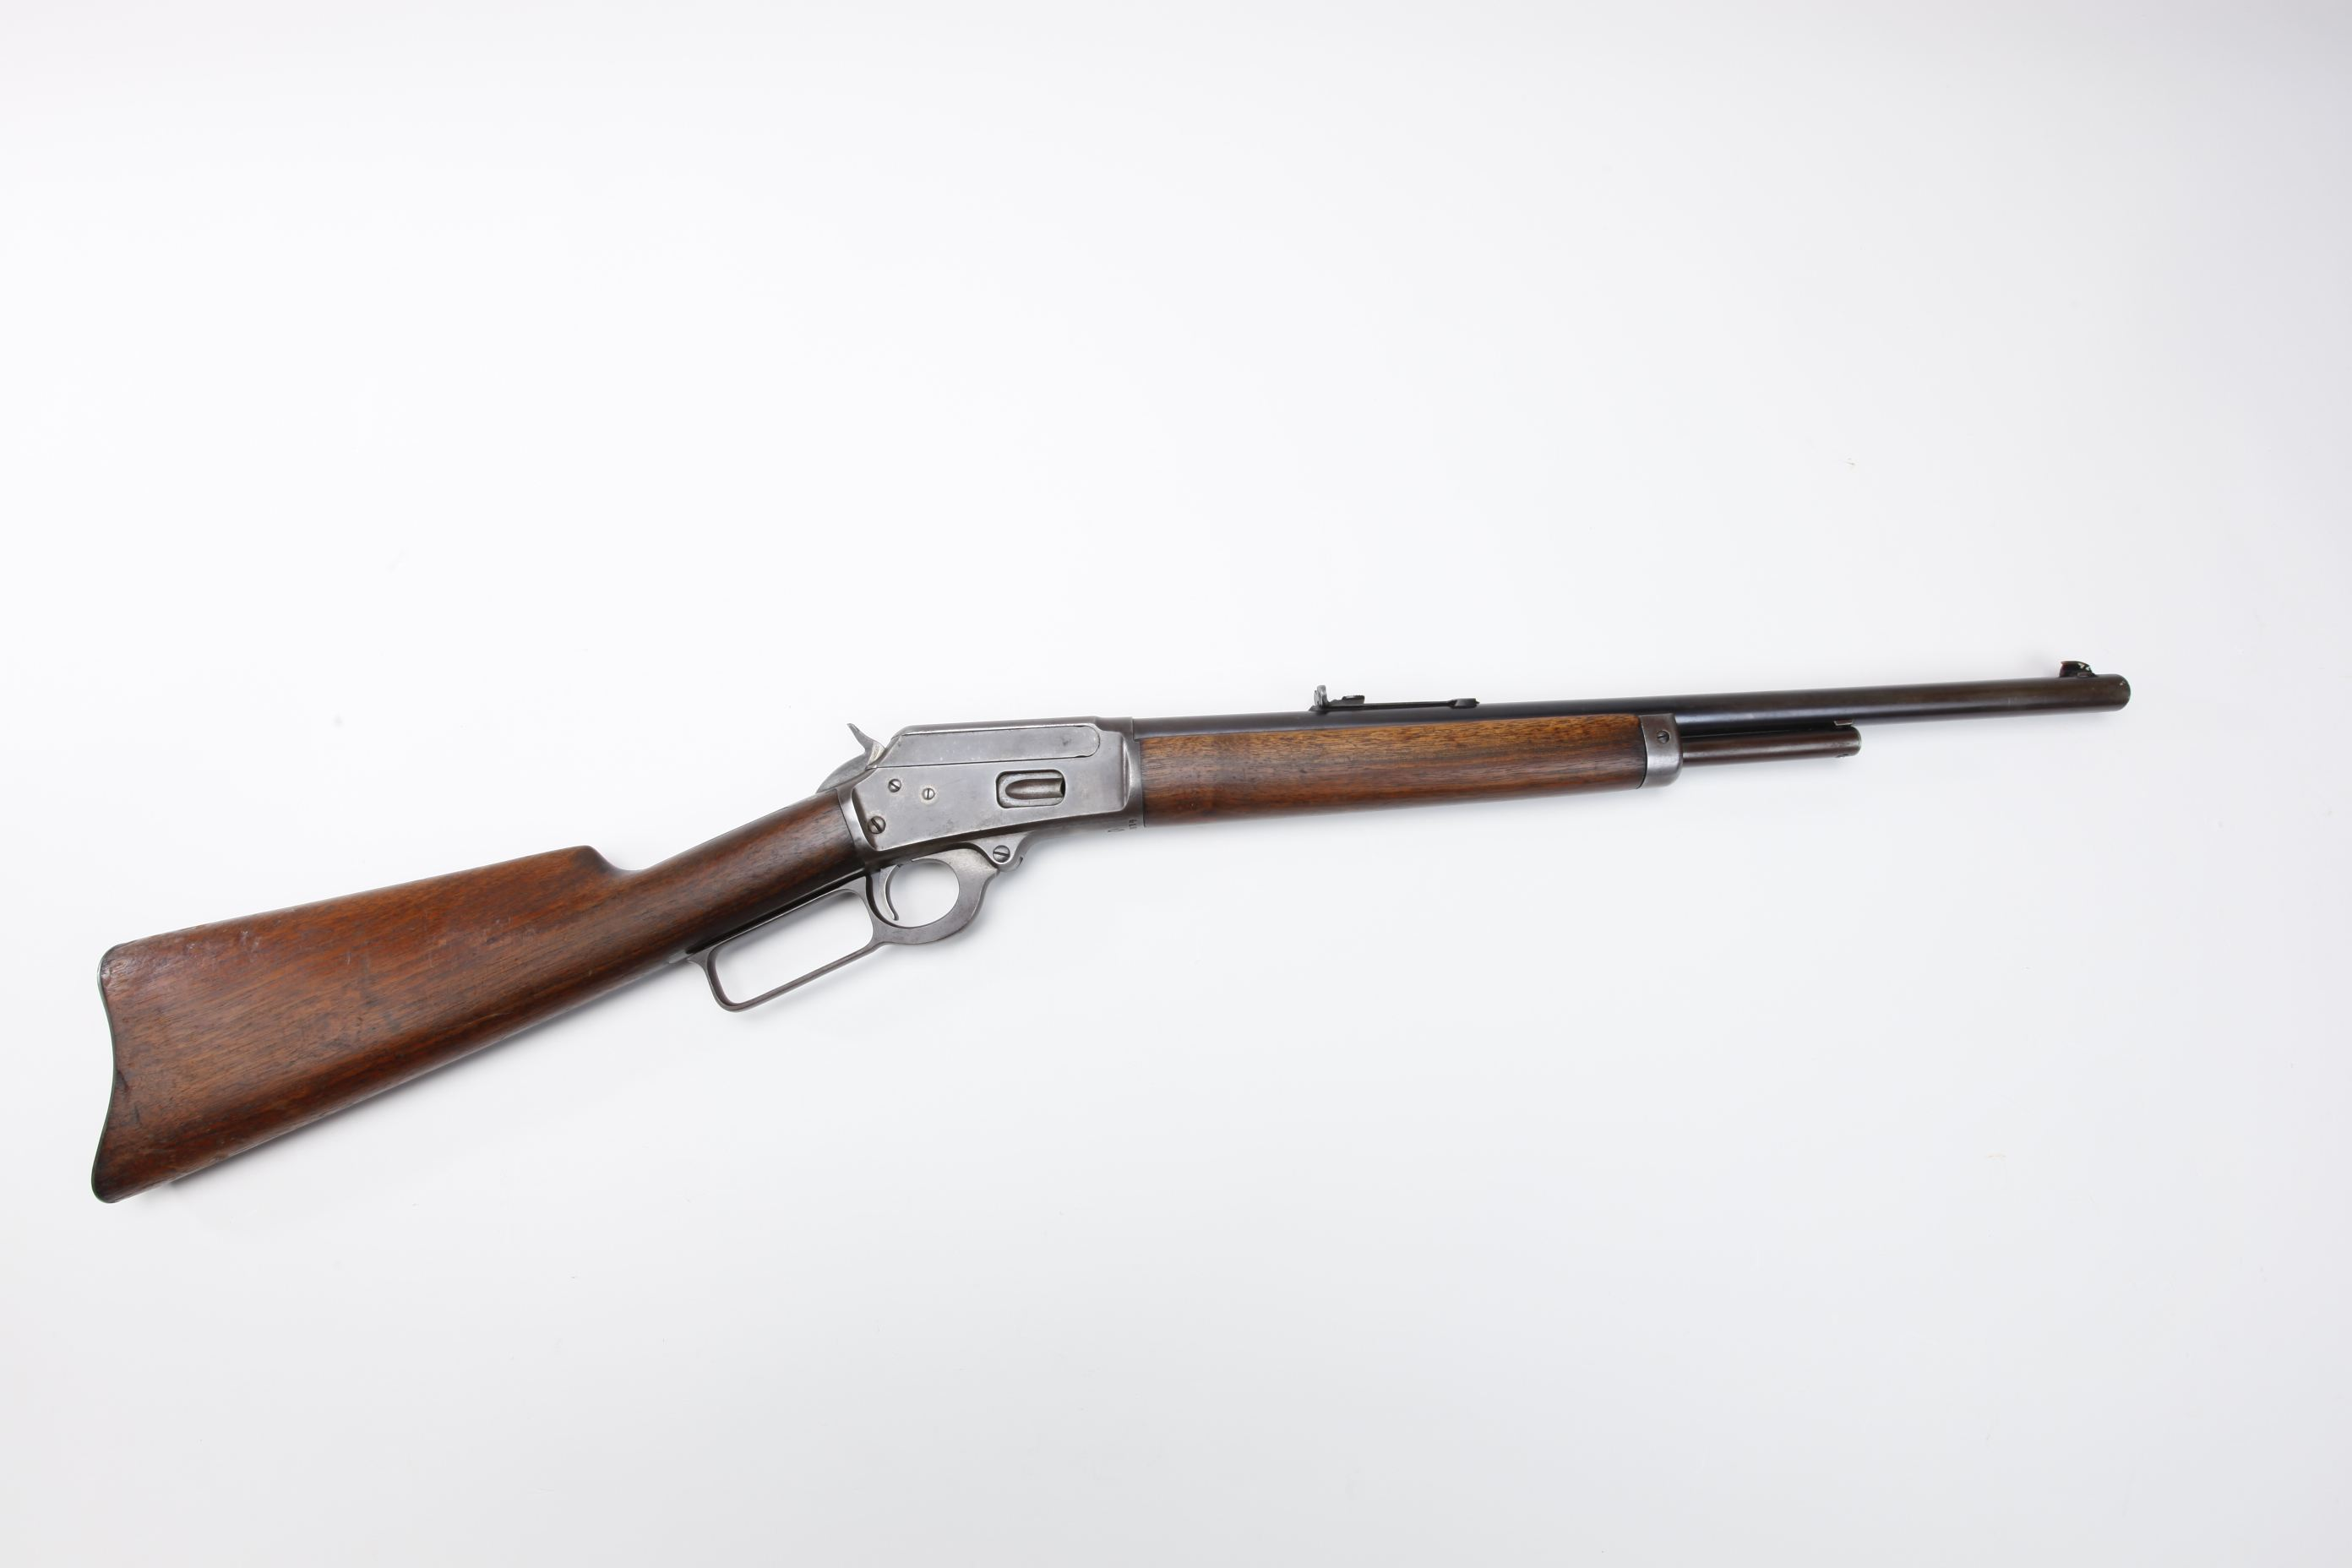 Marlin Model 1894 Lever Action Rifle (1)